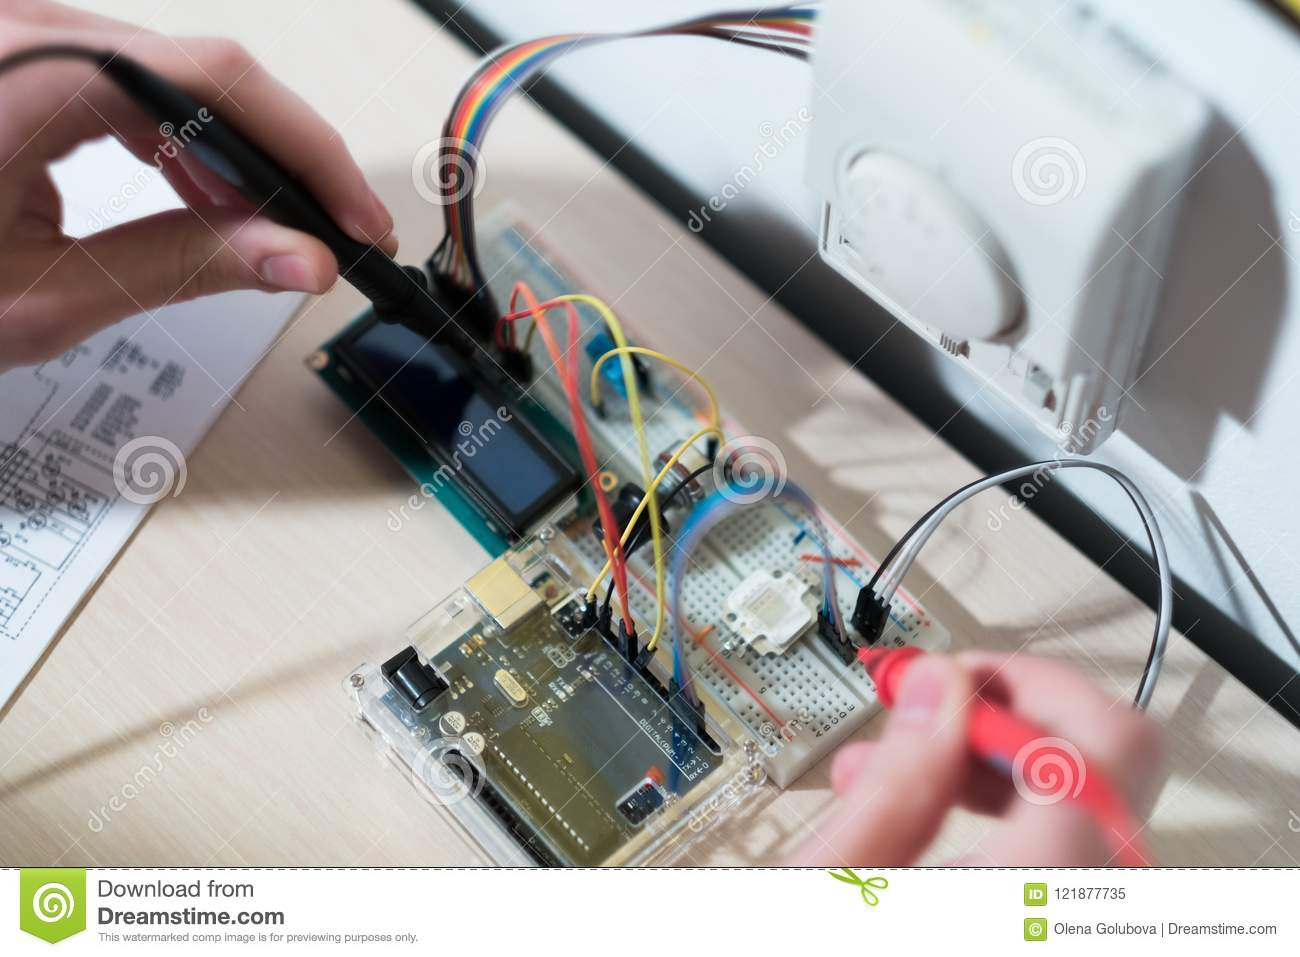 hight resolution of smart home technology engineering efficient living design hand testing a custom made automated house control system